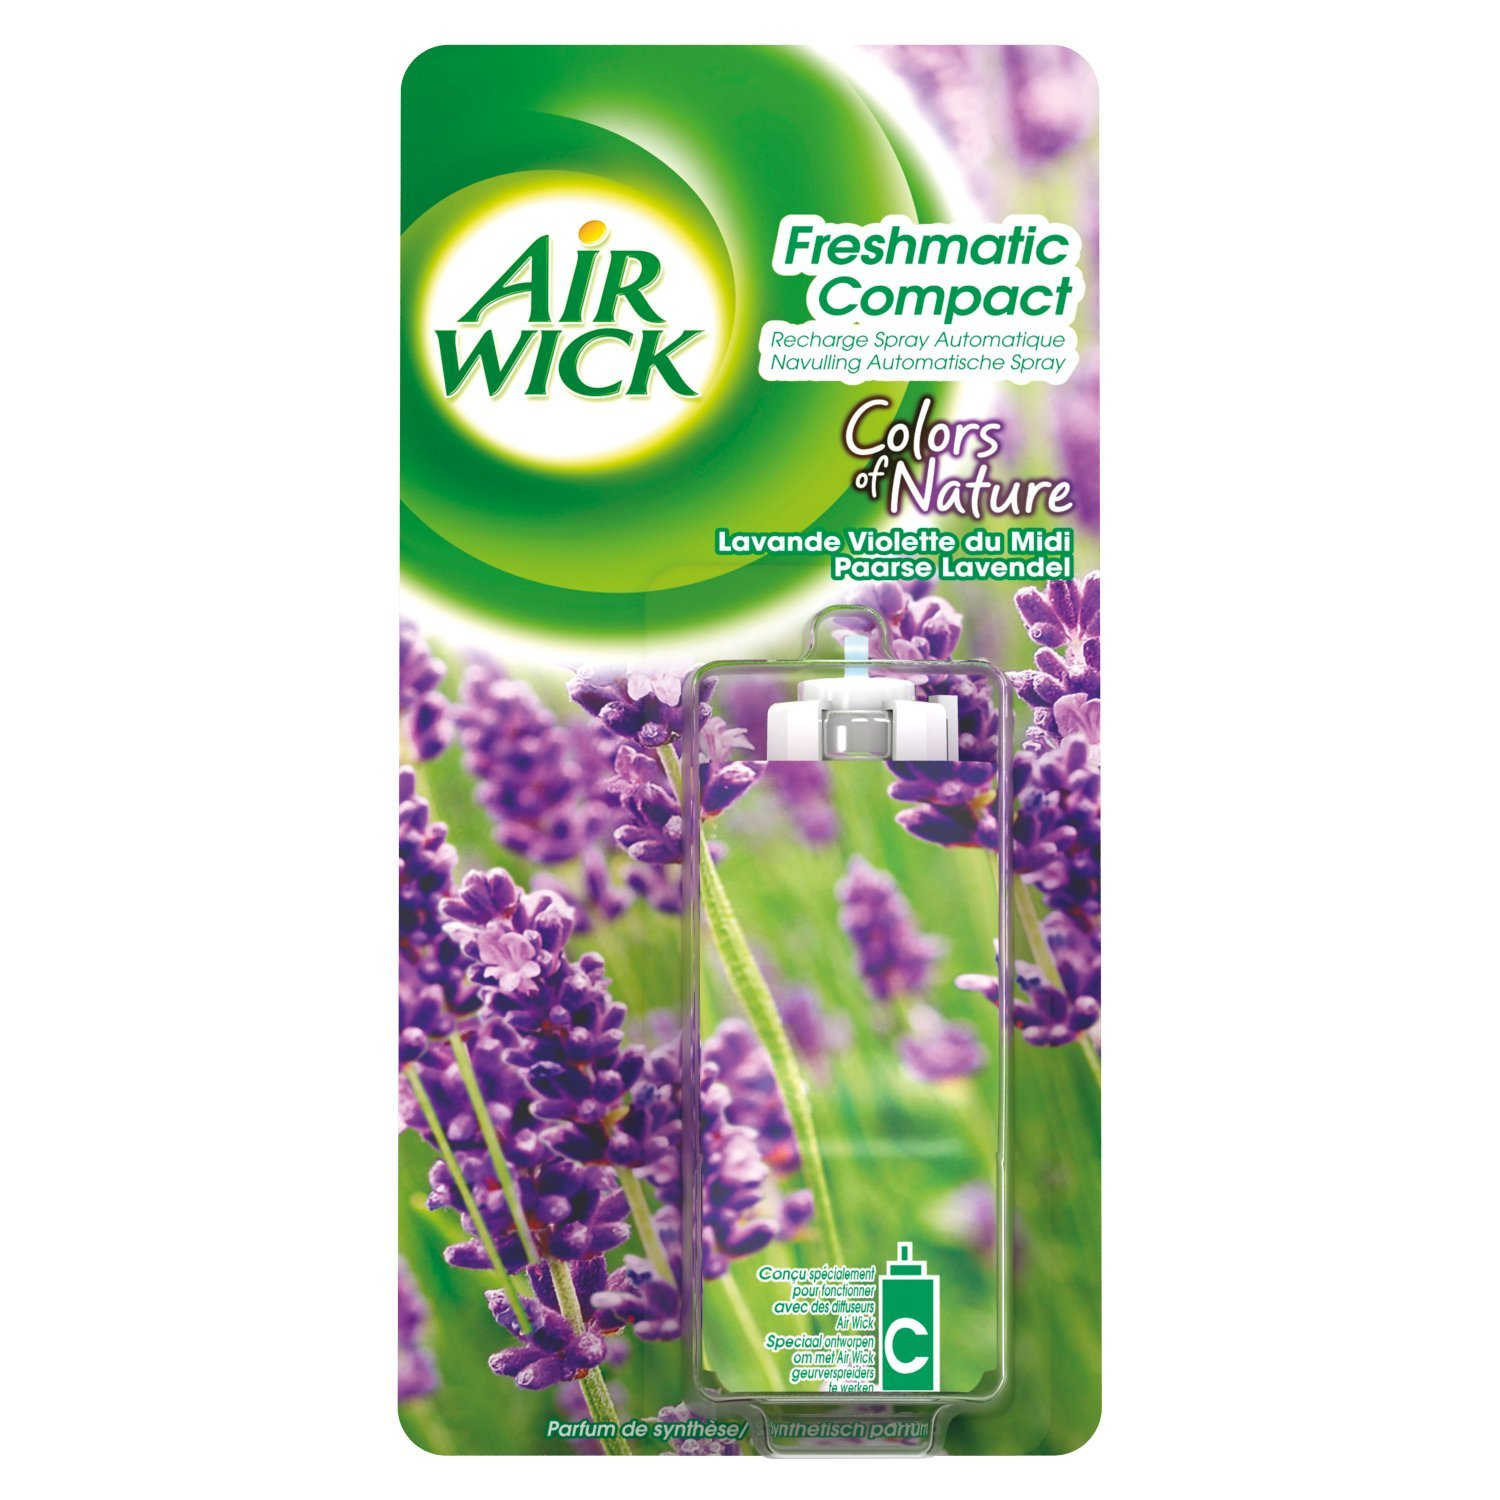 Air Wick Air Freshener Refill For Freshmatic Compact Lavender 24 Ml